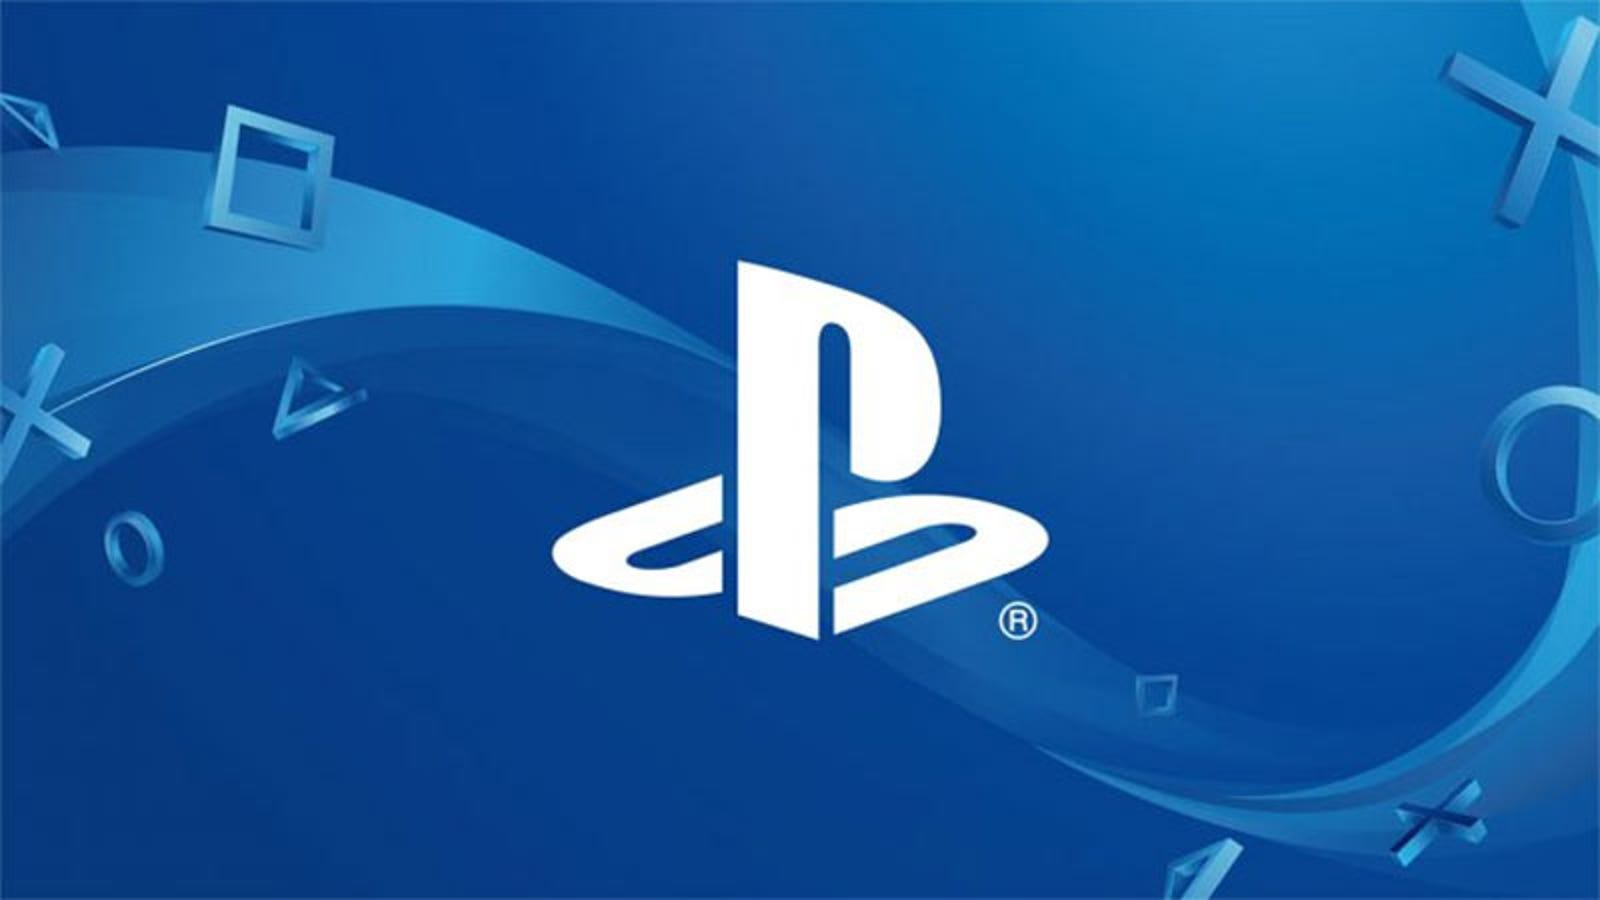 Sony Is Finally Allowing Cross-Play On The PS4 [Update]